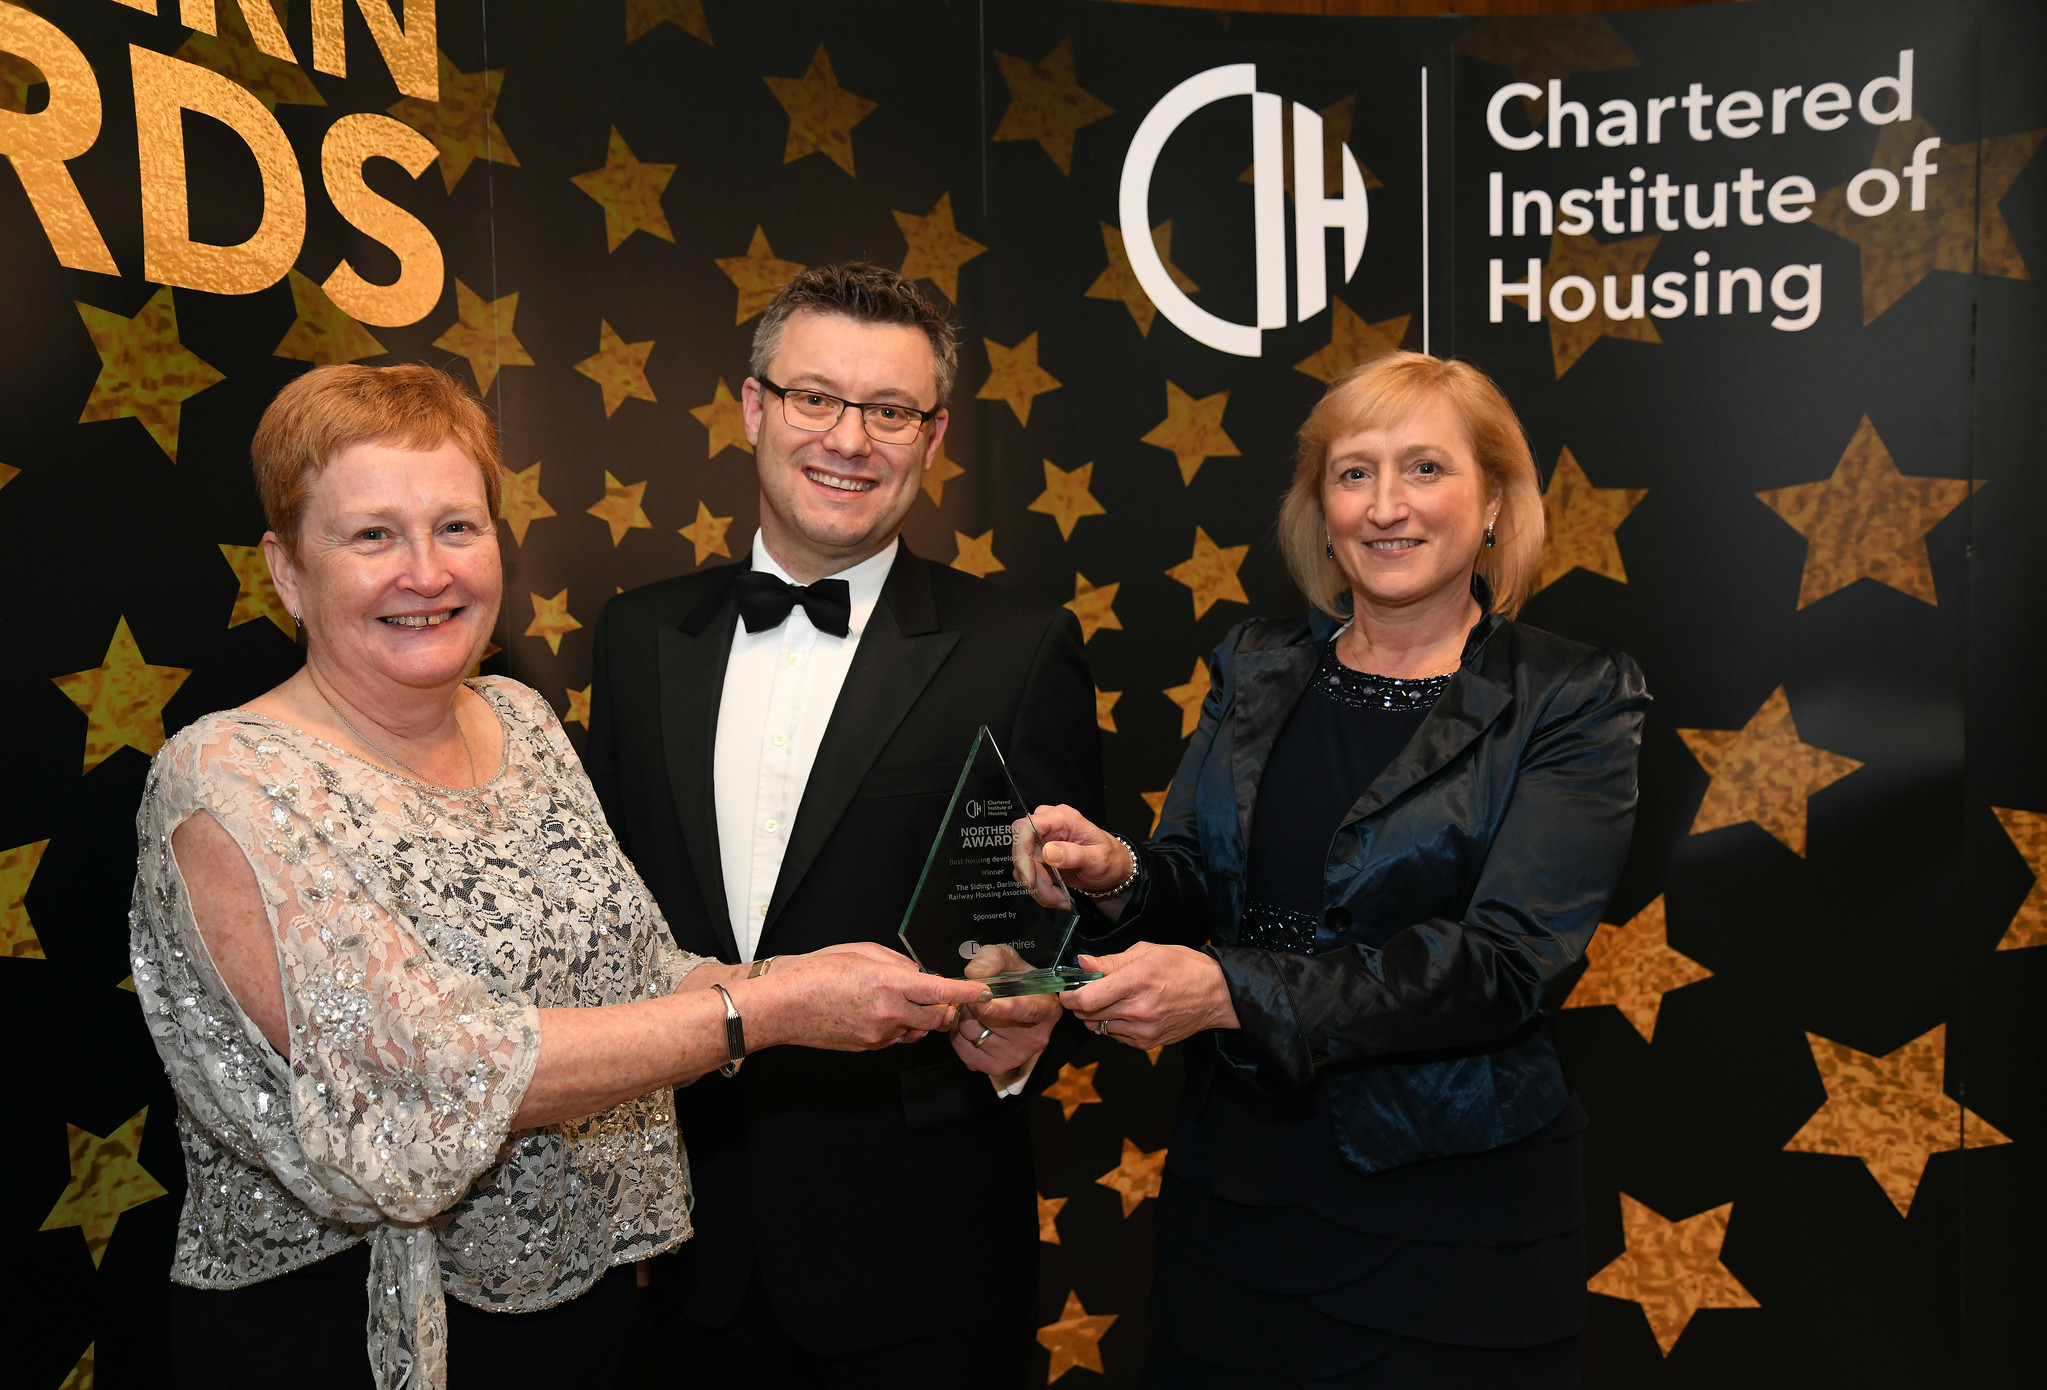 And the award goes to...Us! - Railway Housing Association